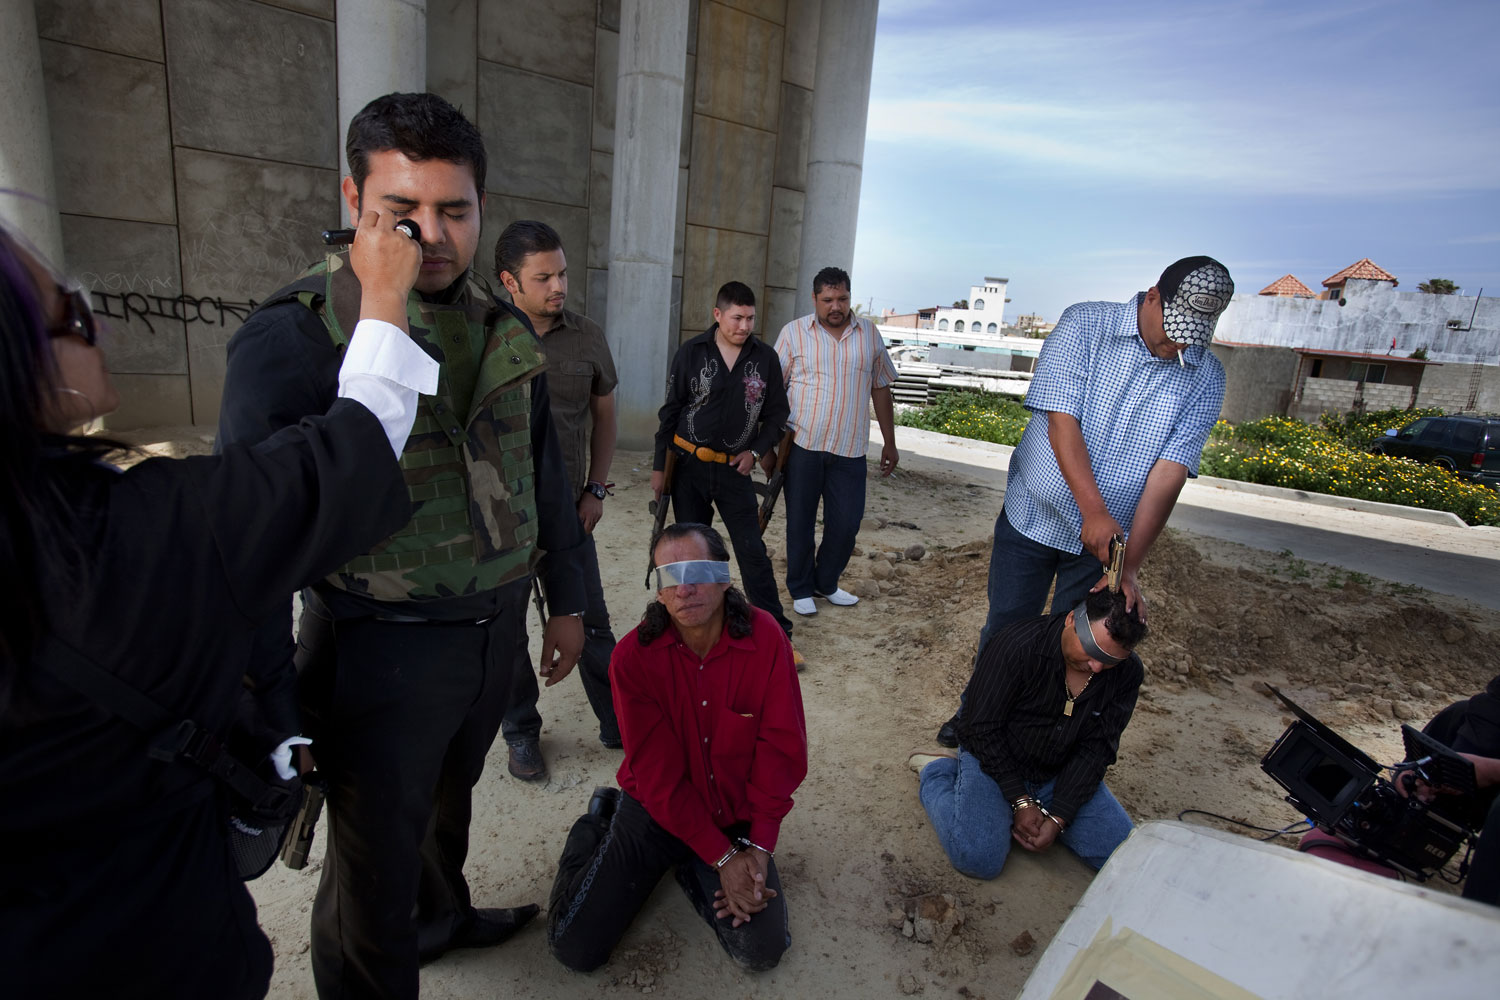 Art Imitates Life                               The popularity of narcocorridos has led to a spate of films with narco-themes. Here, actors in Tijuana prepare for a scene in Las Aguilas Andan Solas (Eagles Fly Alone)